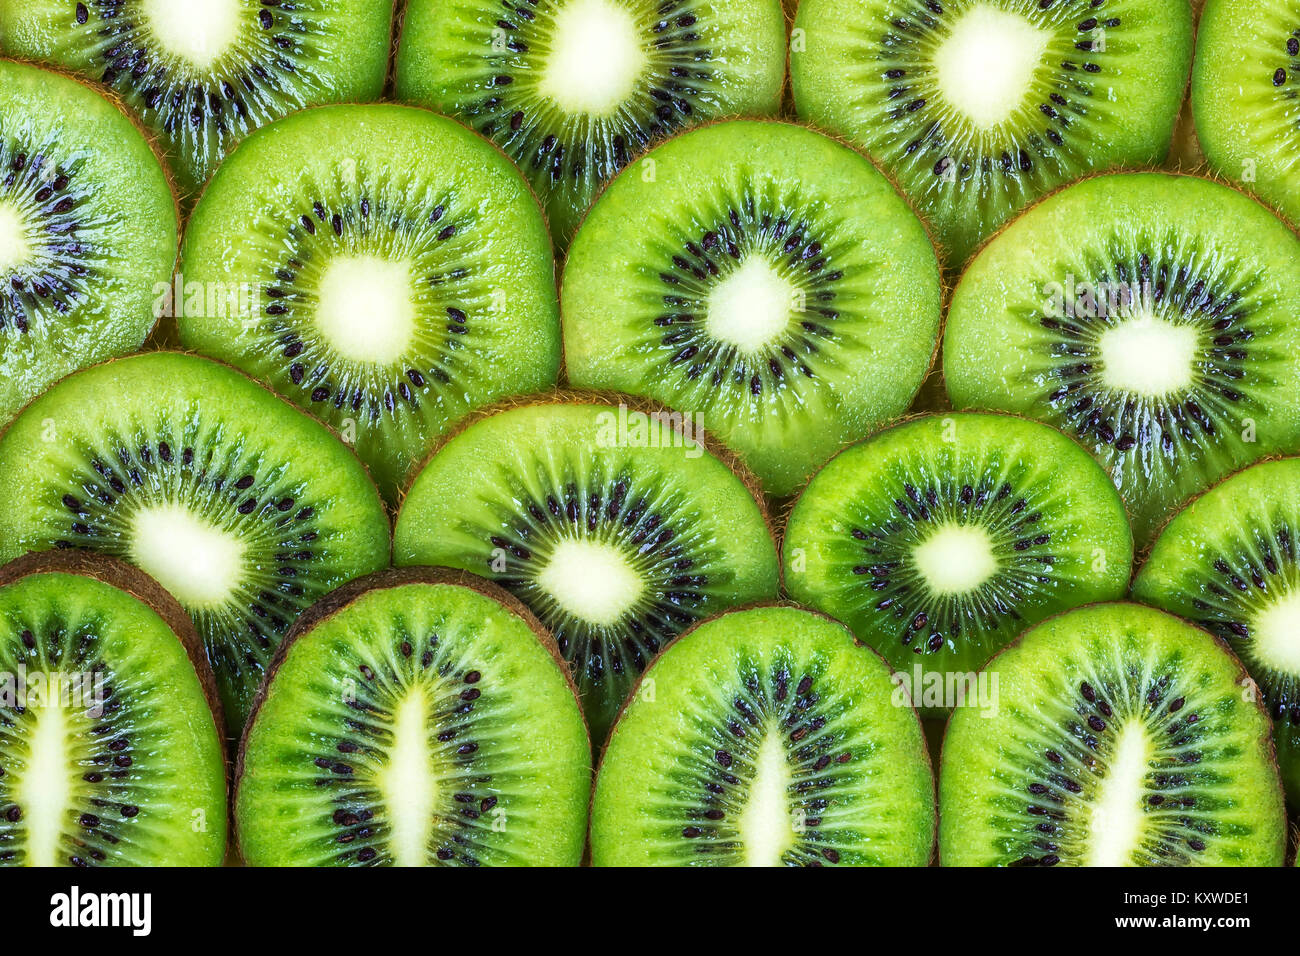 Slices of kiwi are on each other closeup around the image - Stock Image